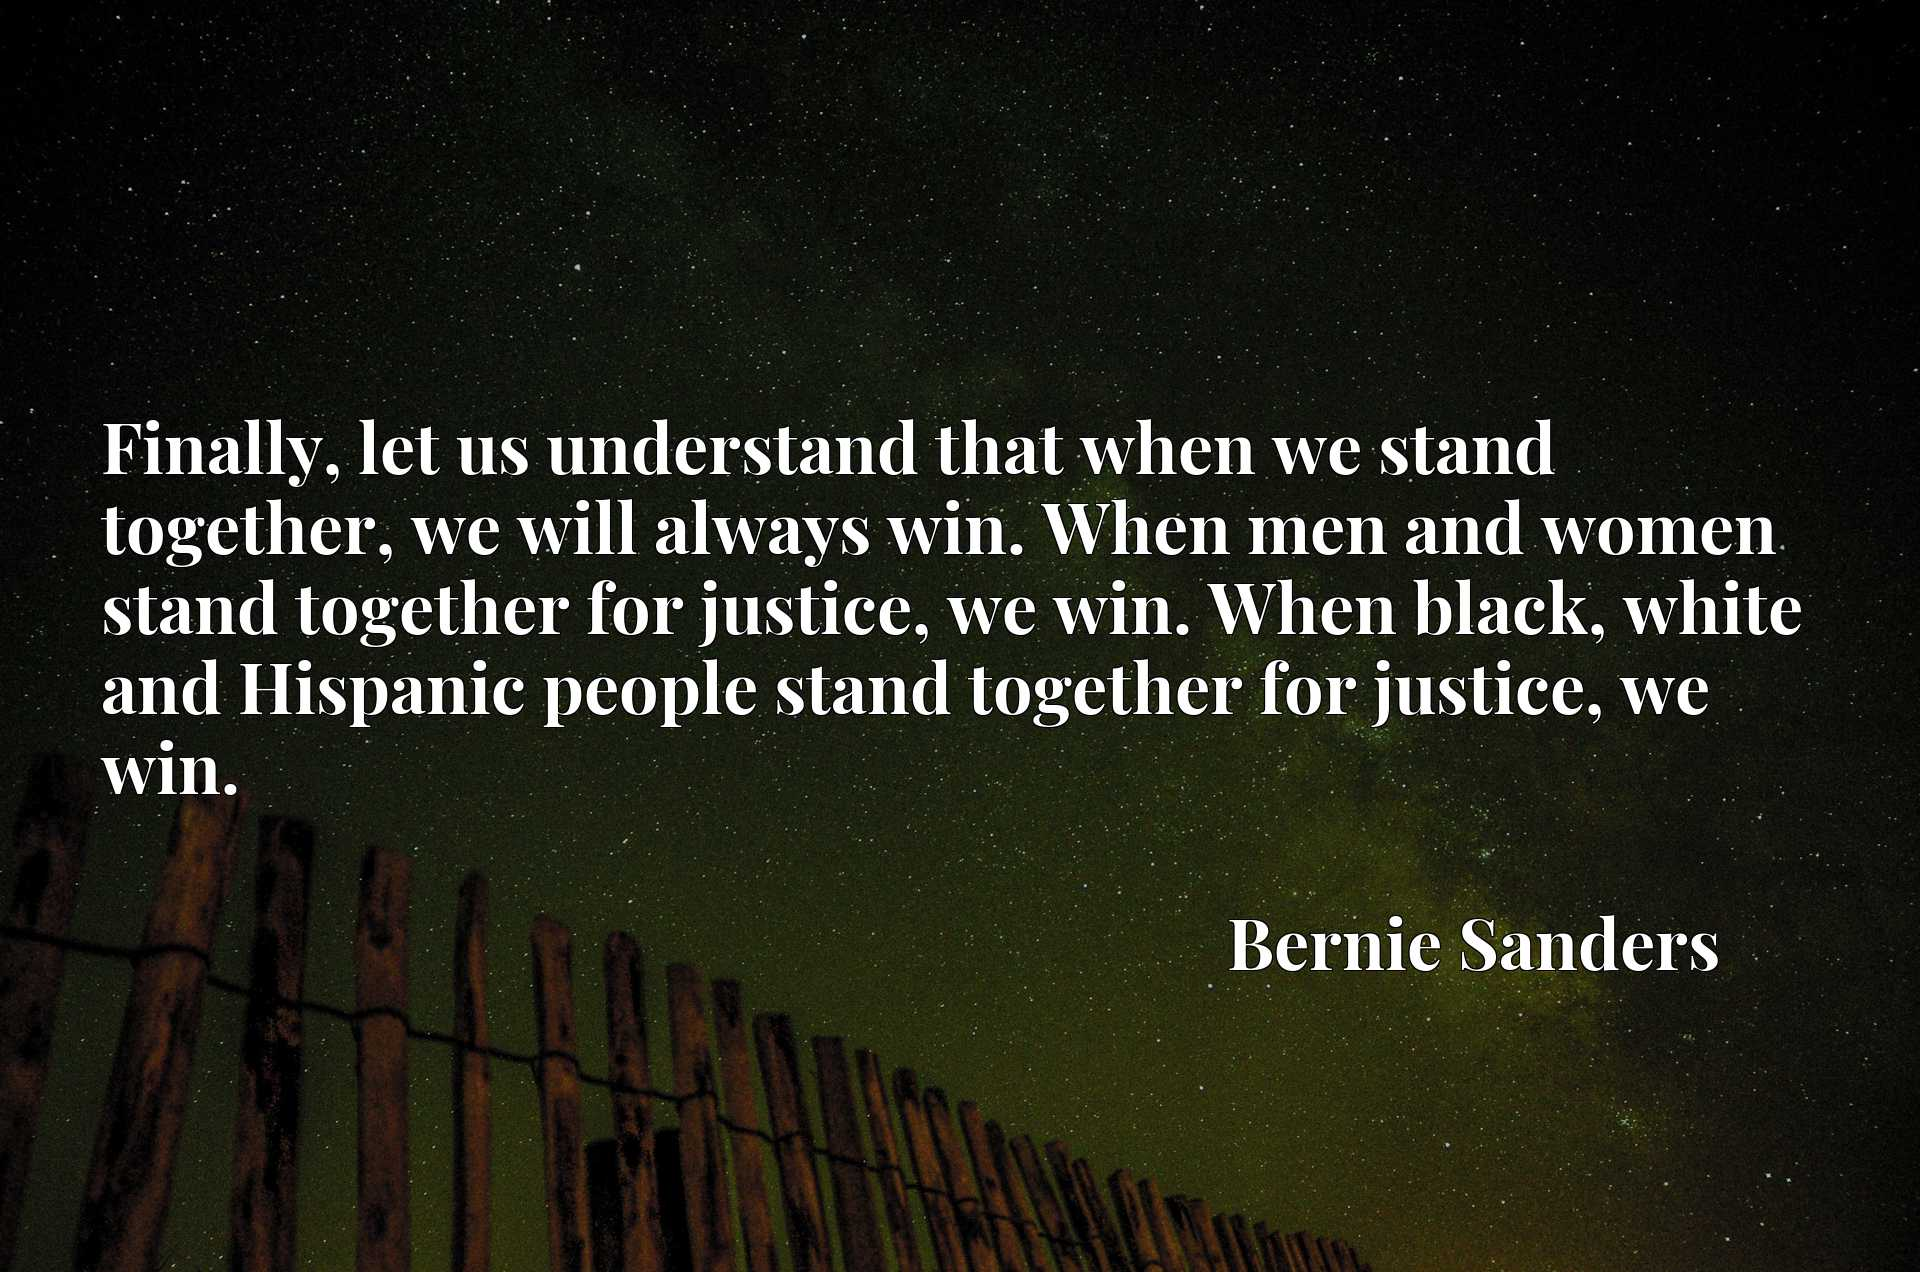 Finally, let us understand that when we stand together, we will always win. When men and women stand together for justice, we win. When black, white and Hispanic people stand together for justice, we win.